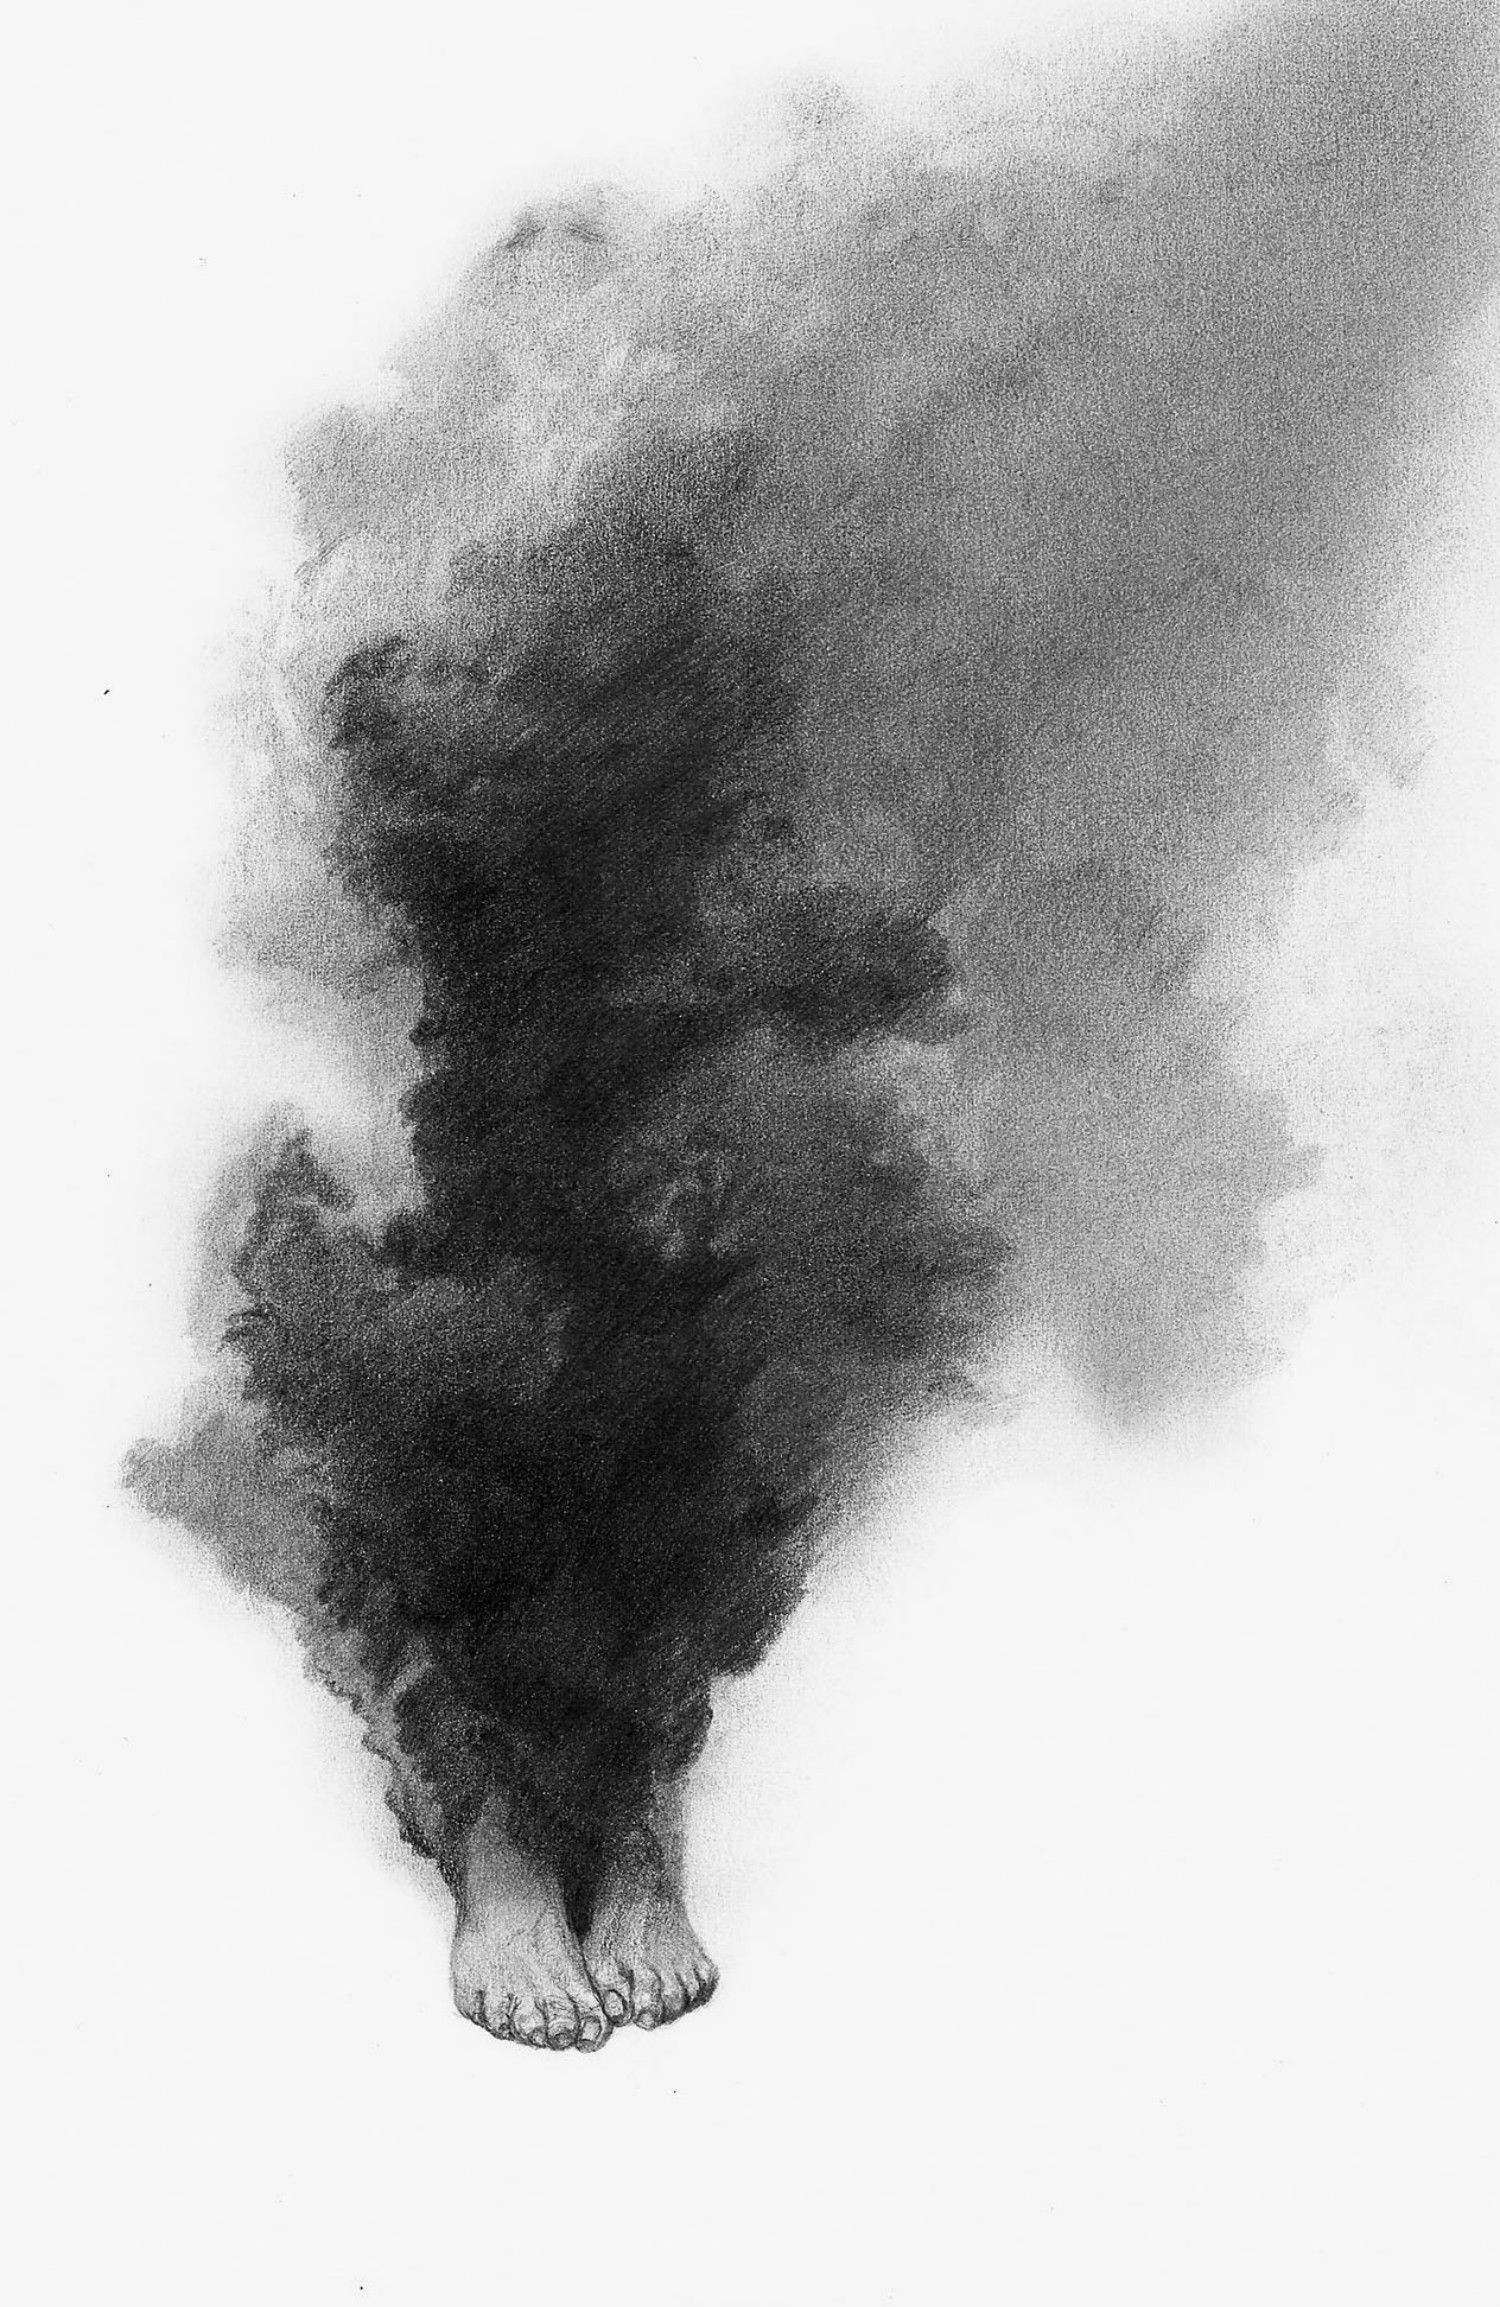 Alejandro García Restrepo illustration black white pencil smoke